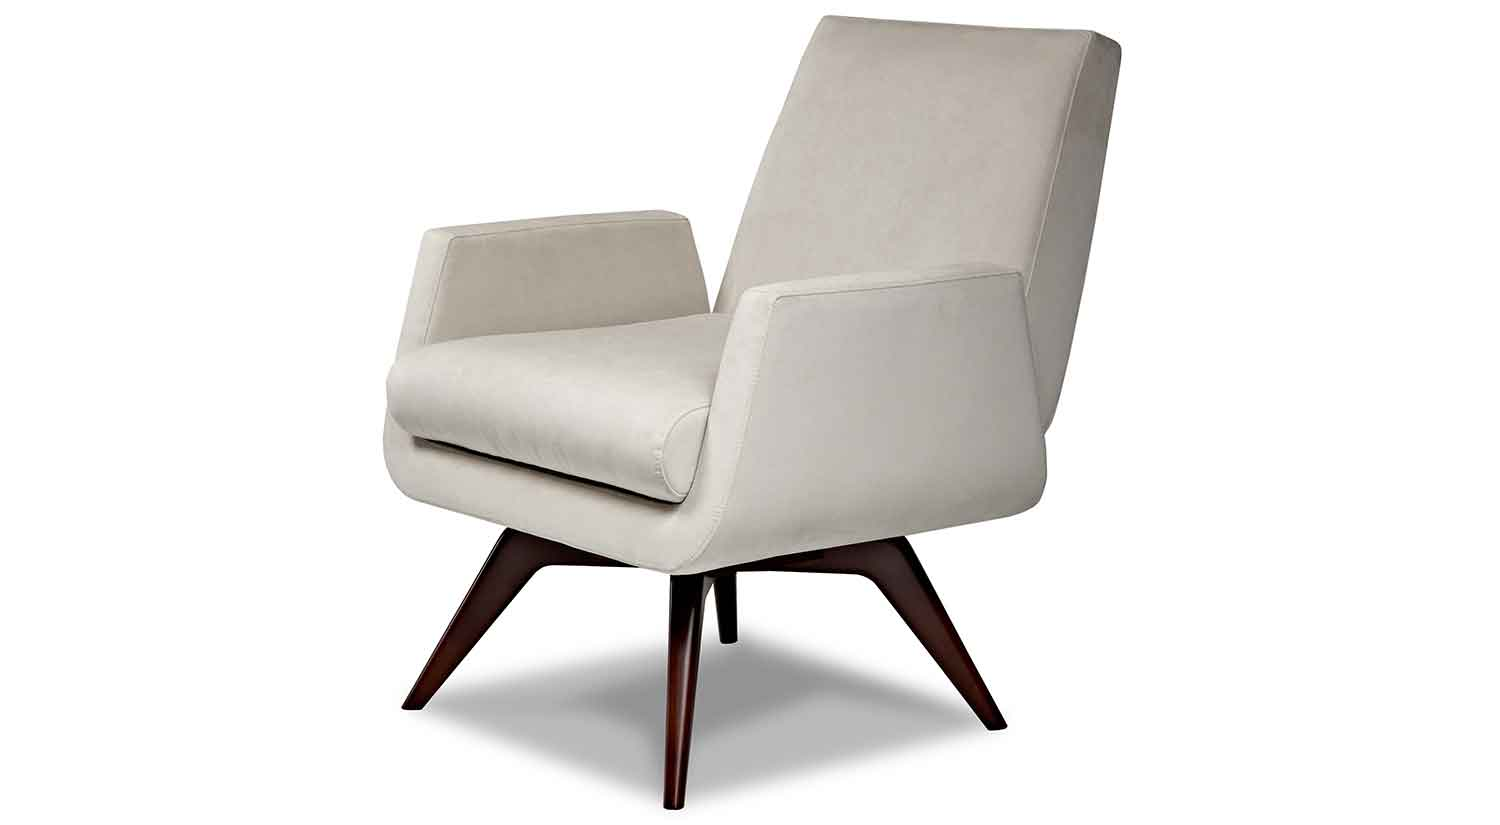 circle furniture chairs small bedroom chair marshall accent pembroke living